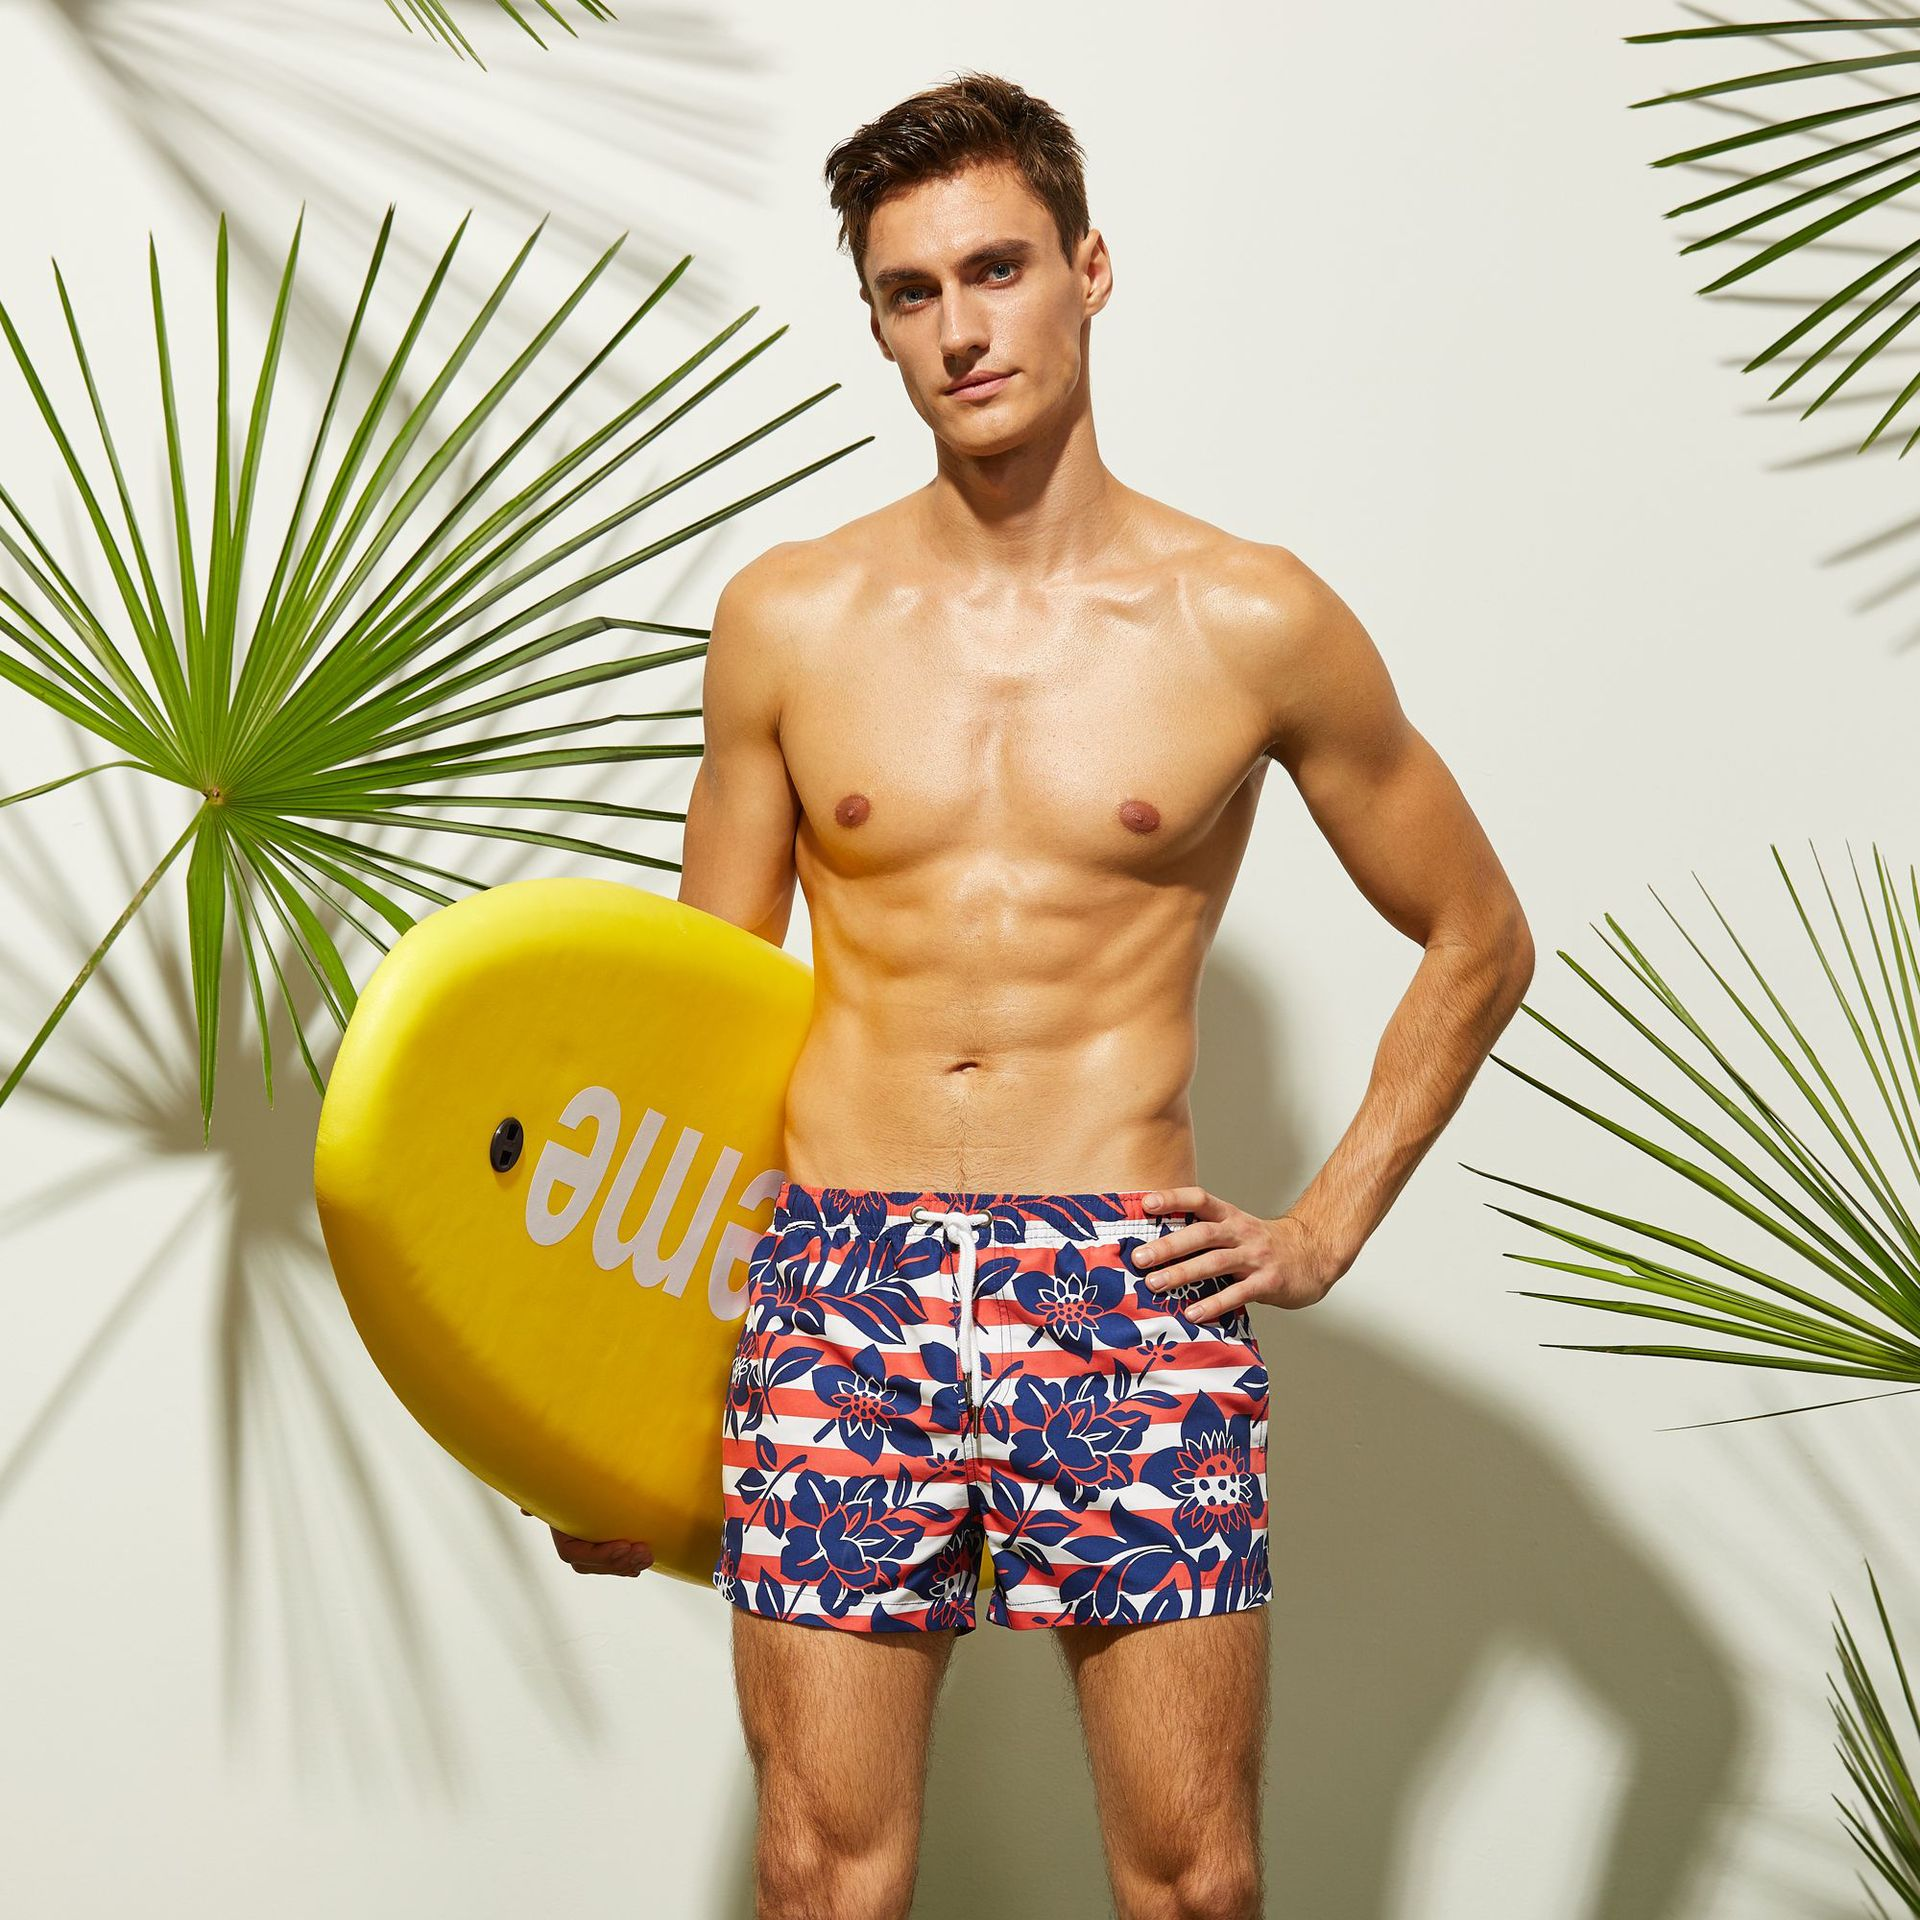 2018 Brand New Men Floral Surf Board Shorts Swimwear Beach Sports Trunks Swimwear Bottom Kasuotang panlangoy